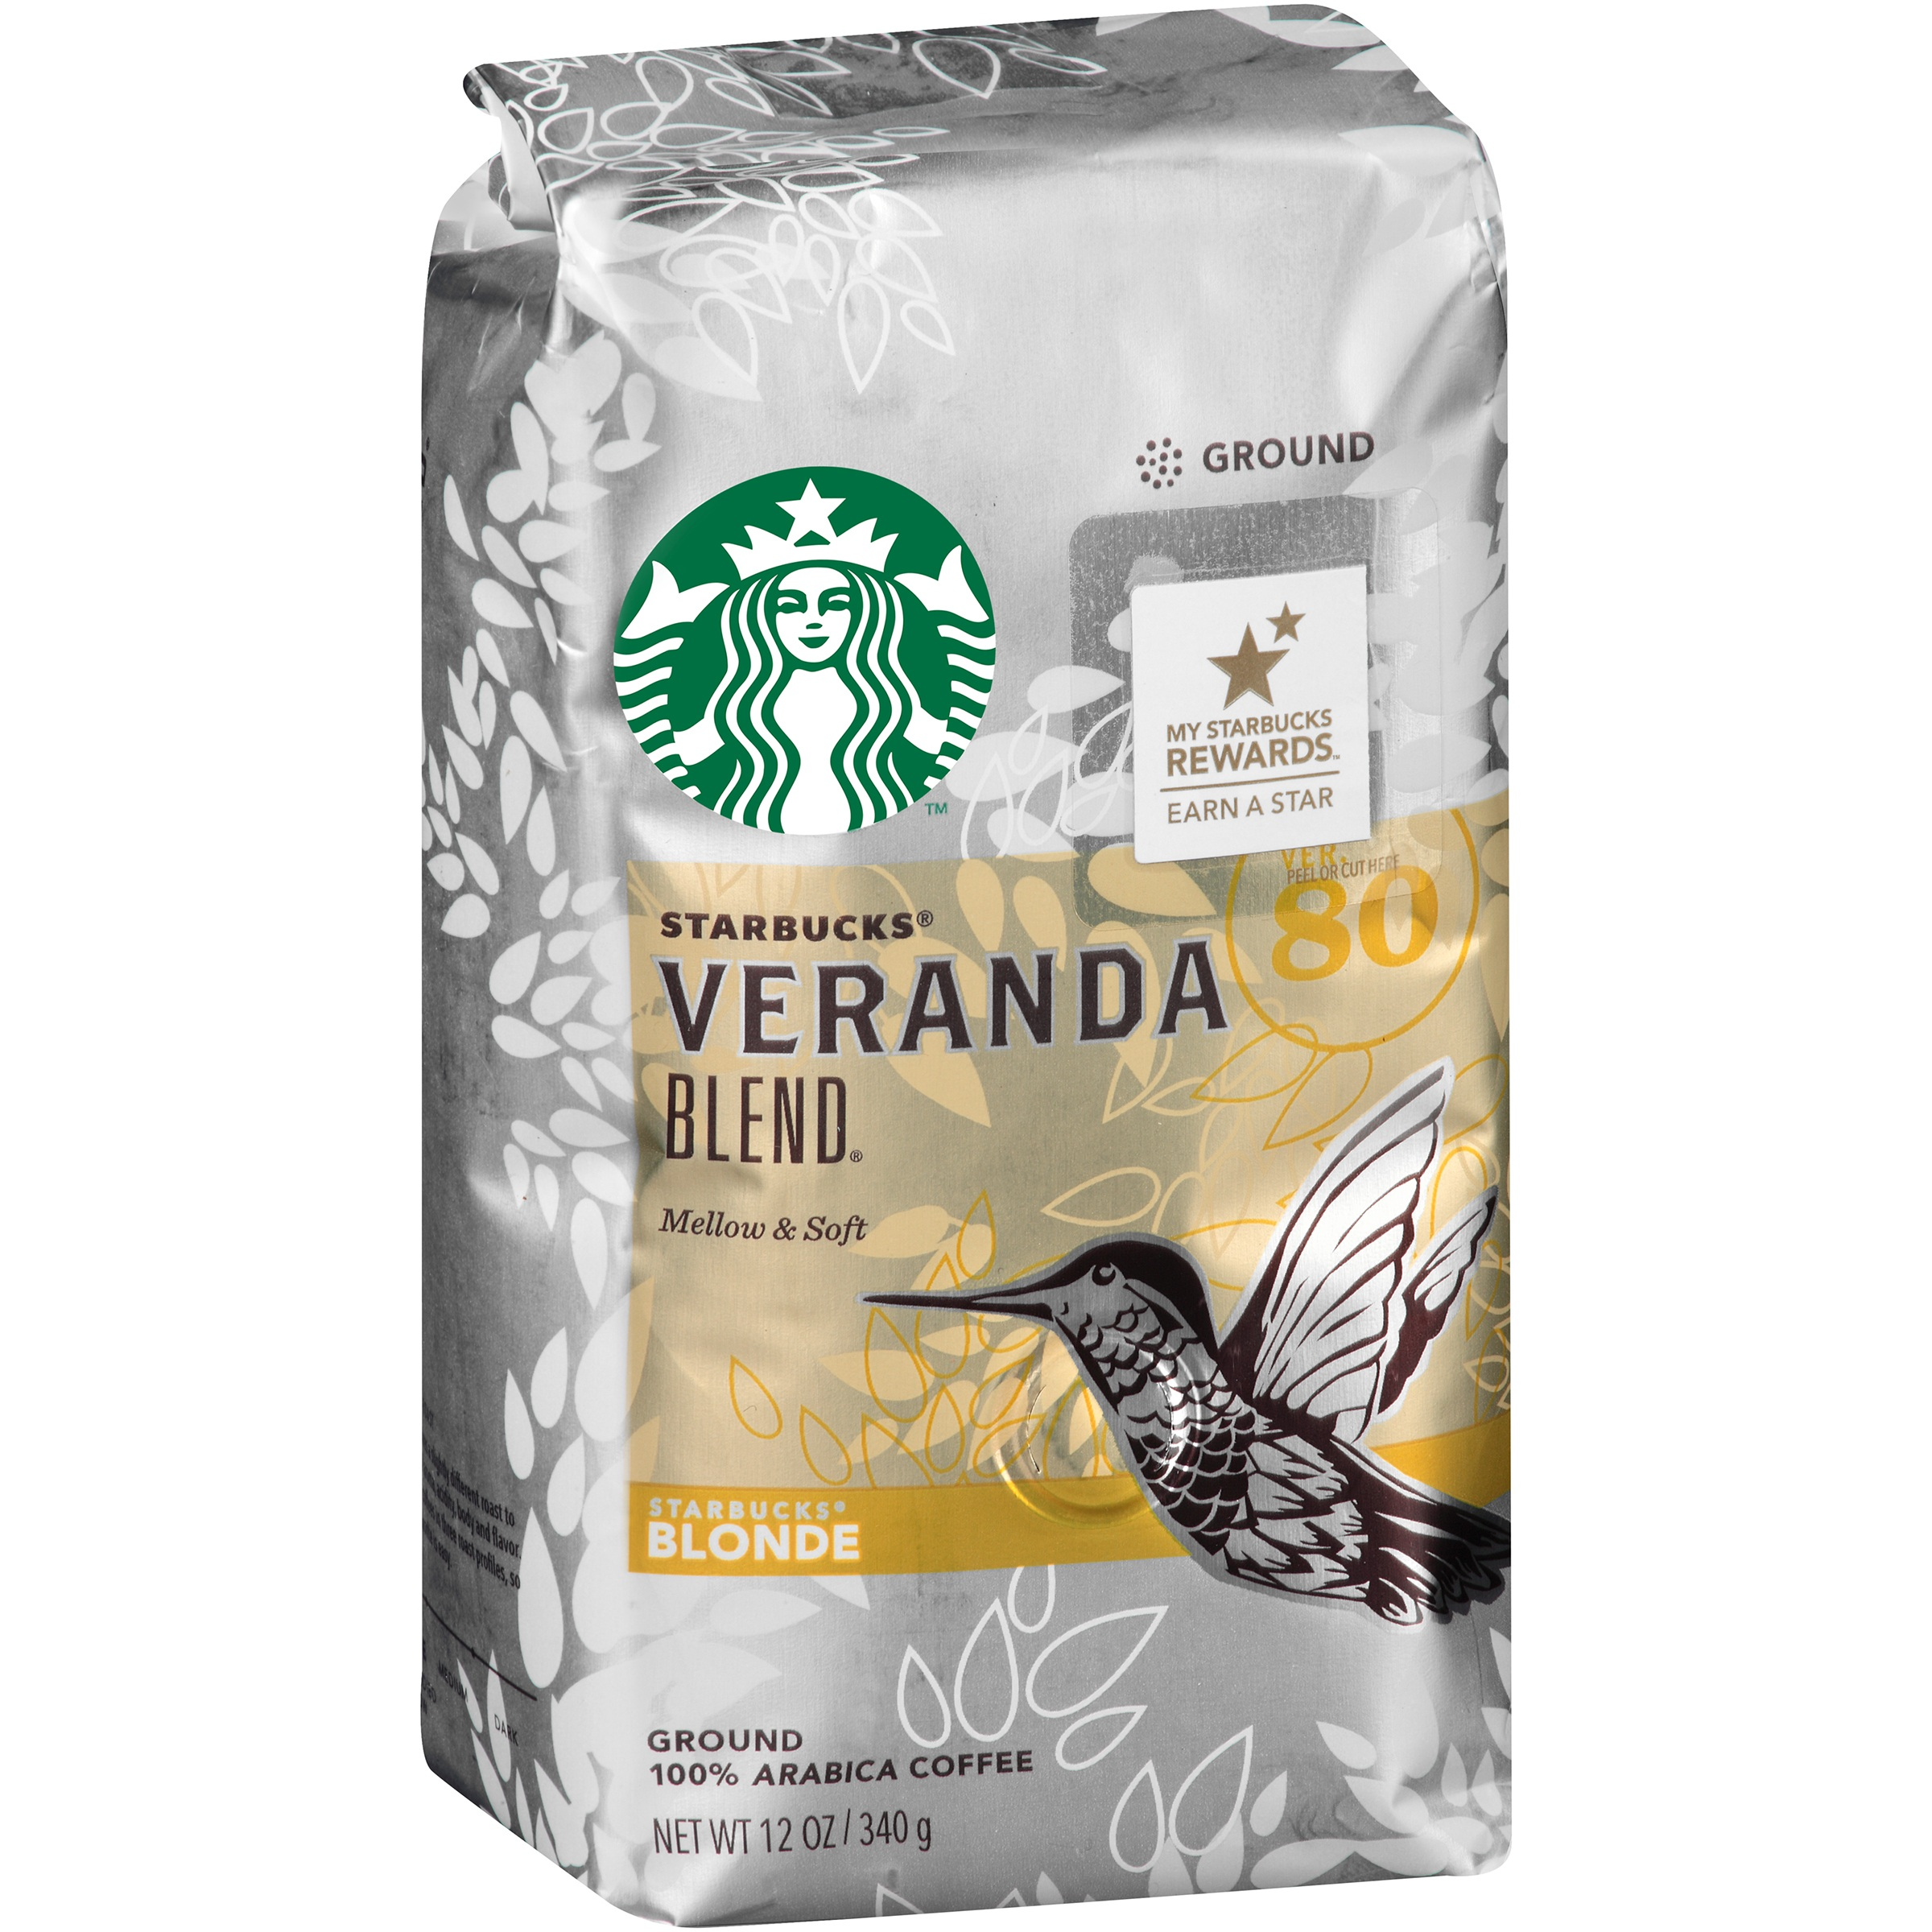 Starbucks Blonde Veranda Blend Ground Coffee, 12 oz